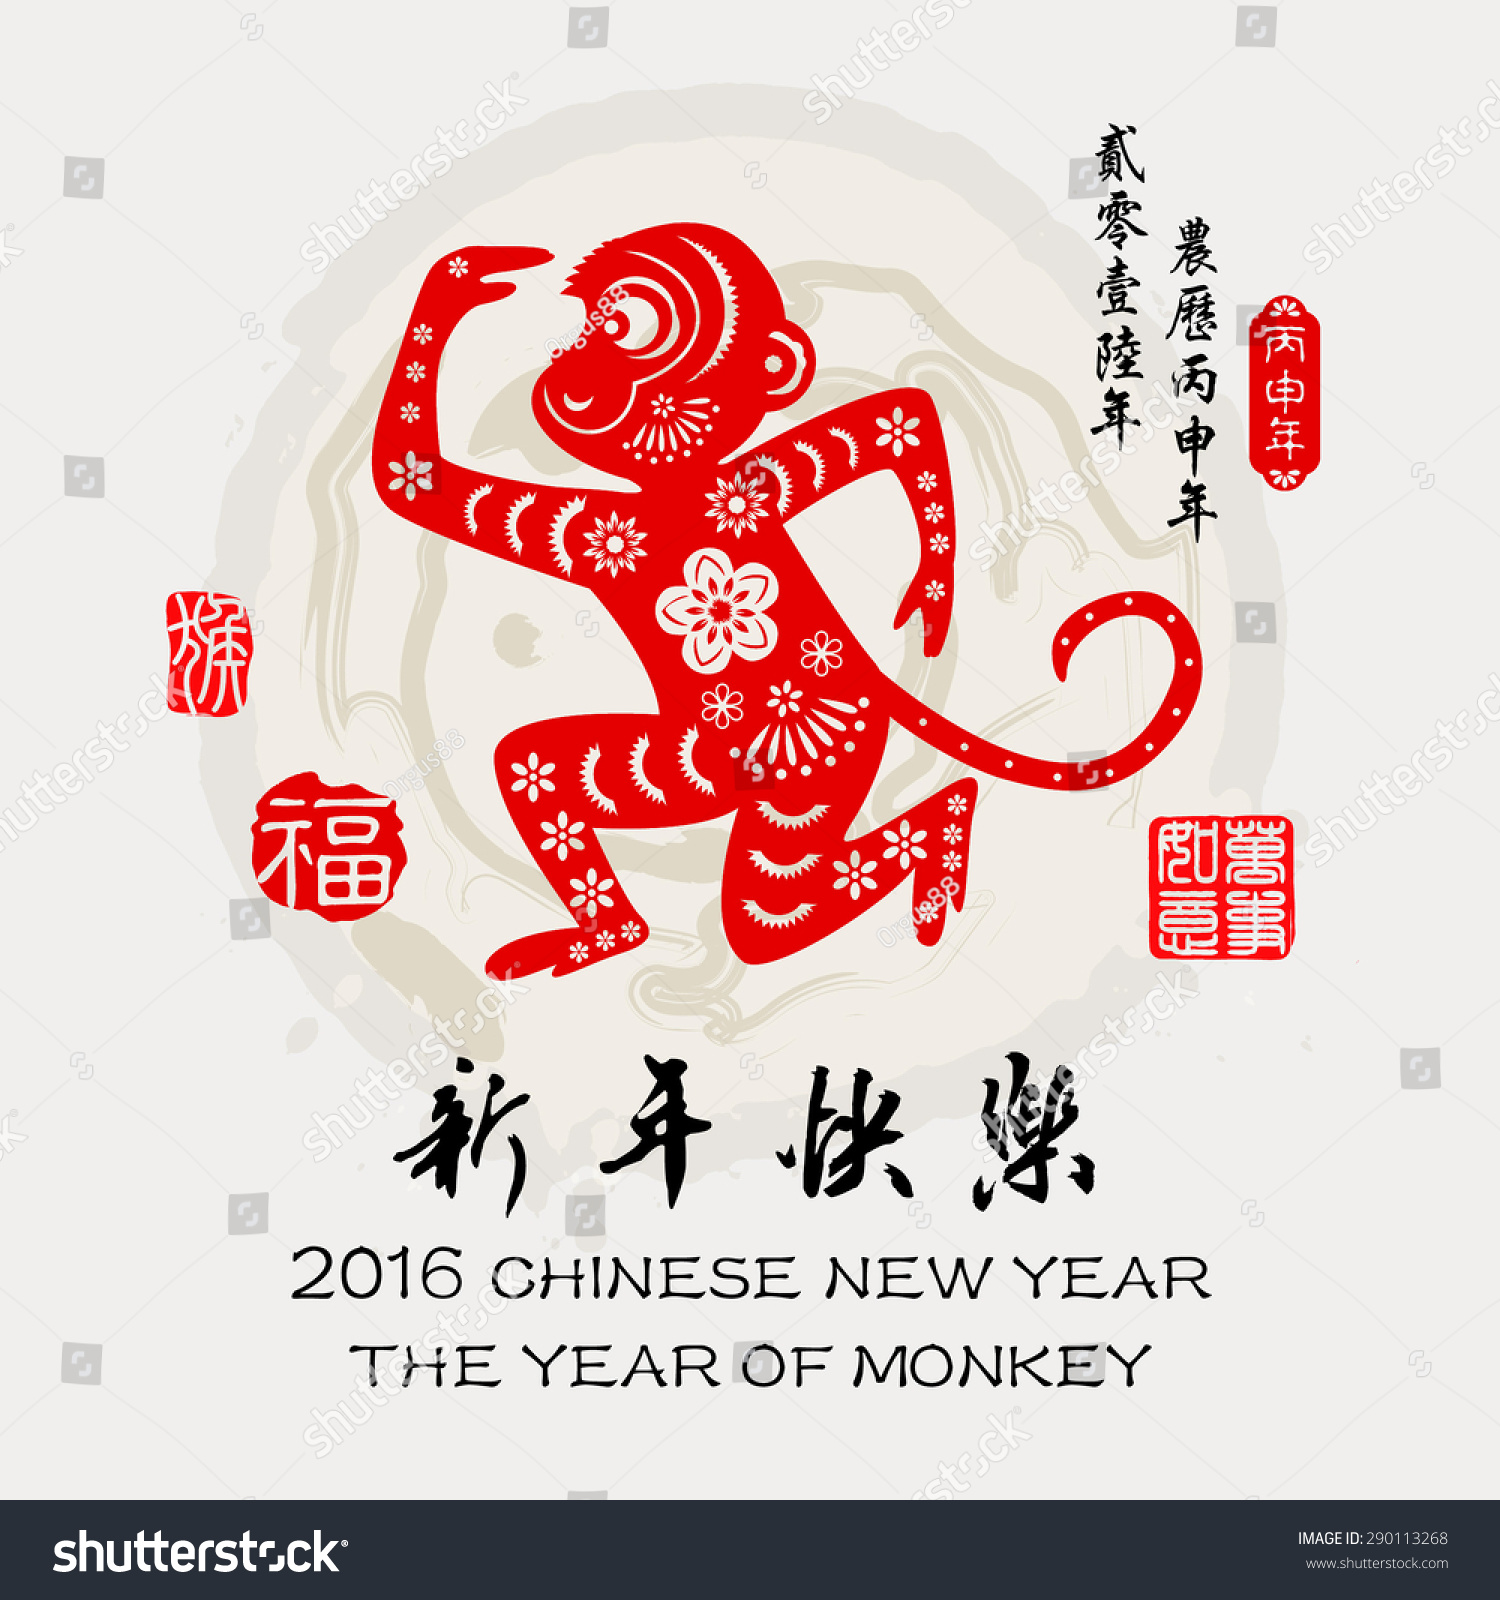 2016 Lunar New Year Greeting Card Monkey Papercut Design ...